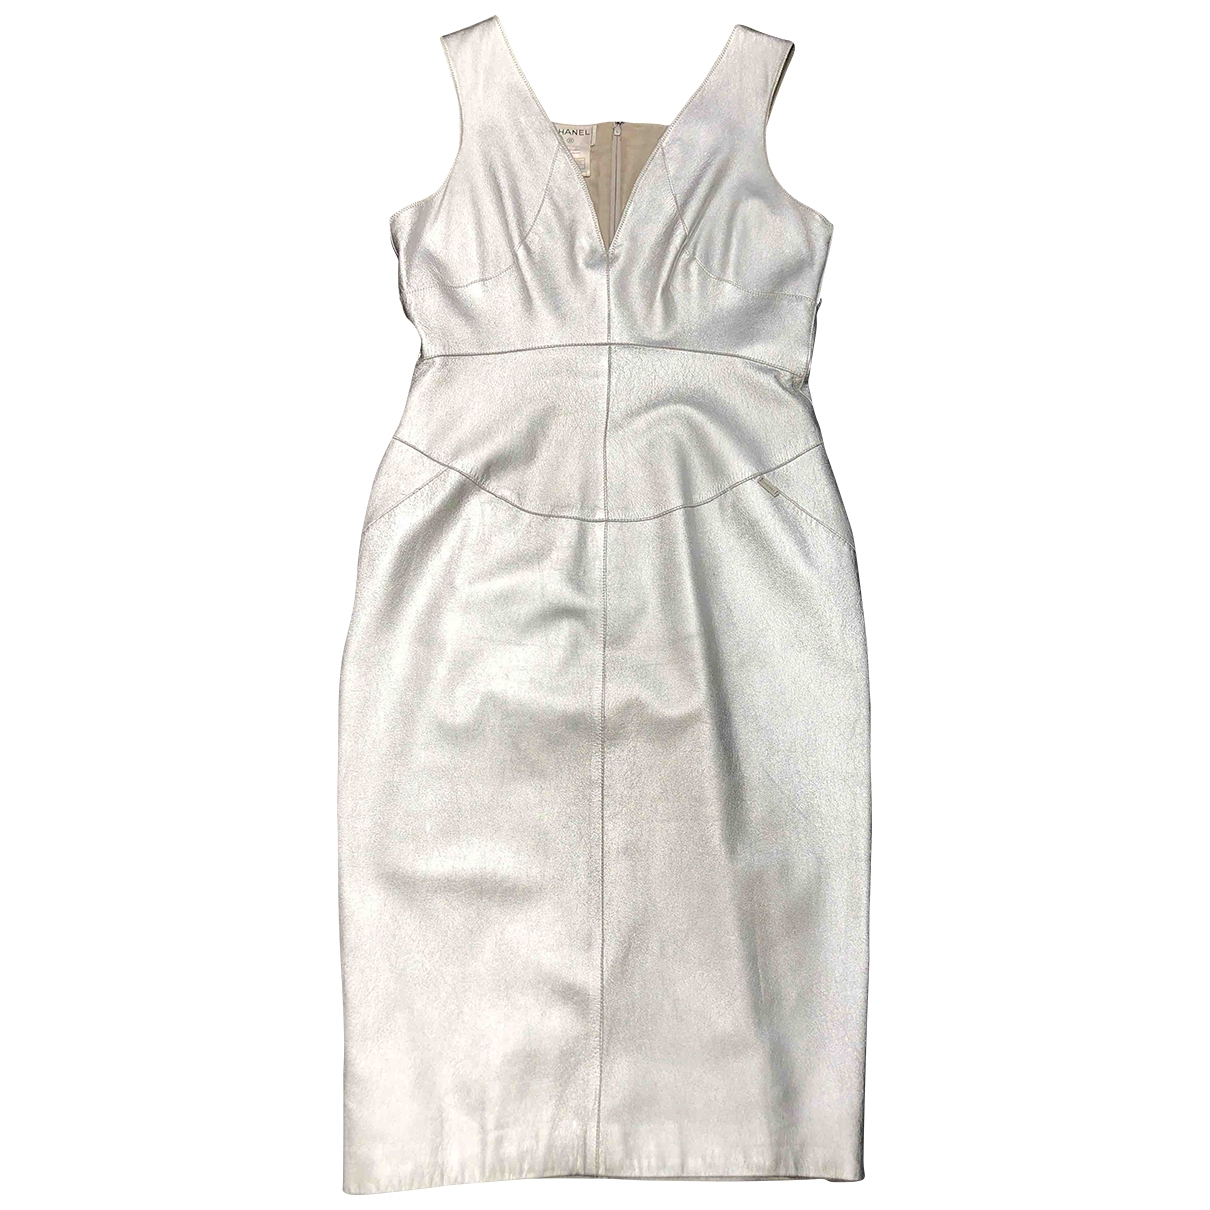 Chanel \N Silver Leather dress for Women 38 FR